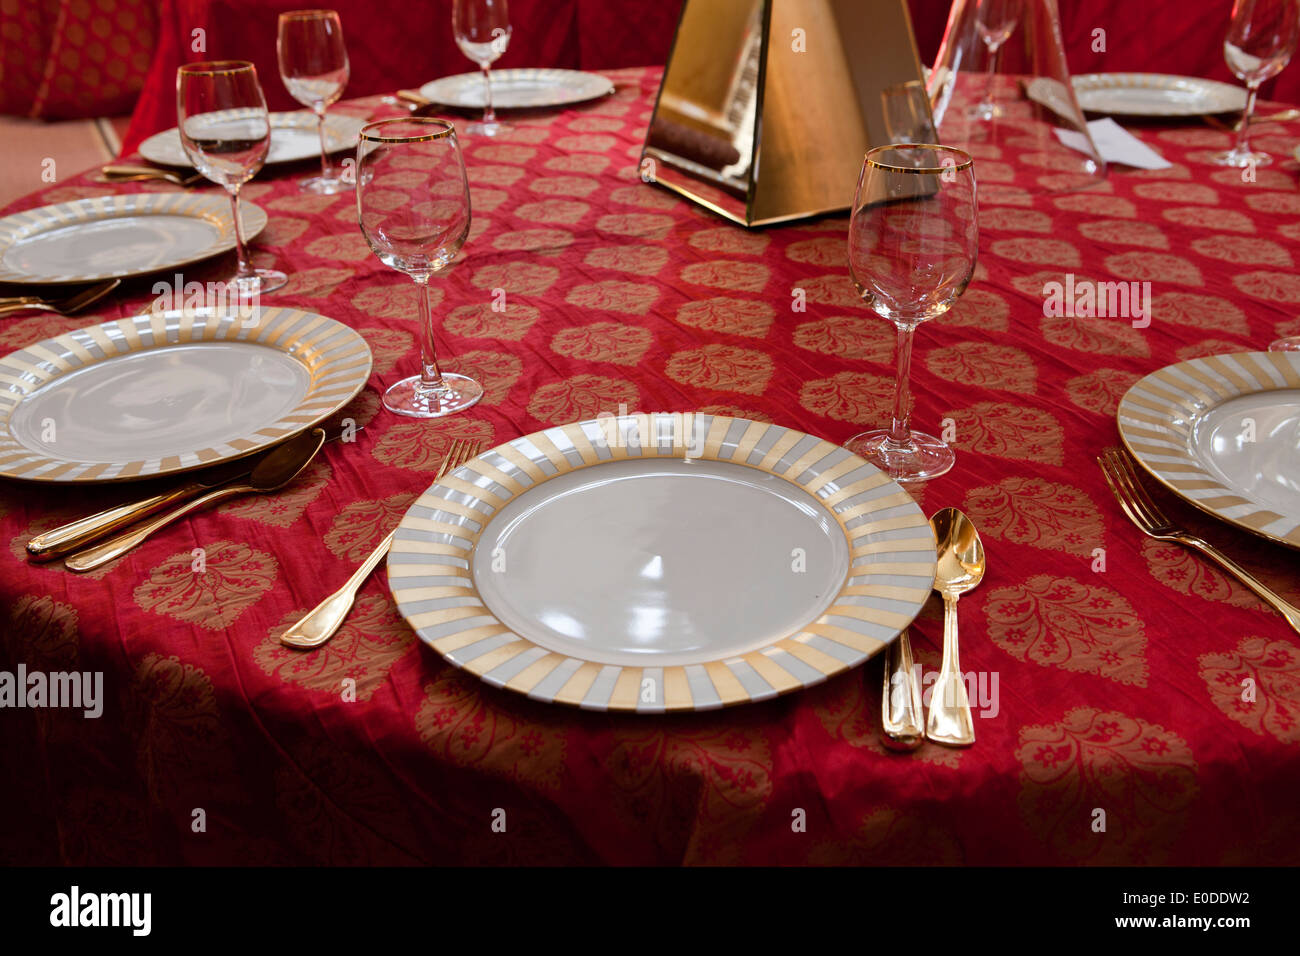 Dining table being prepped for large dinner event - Stock Image